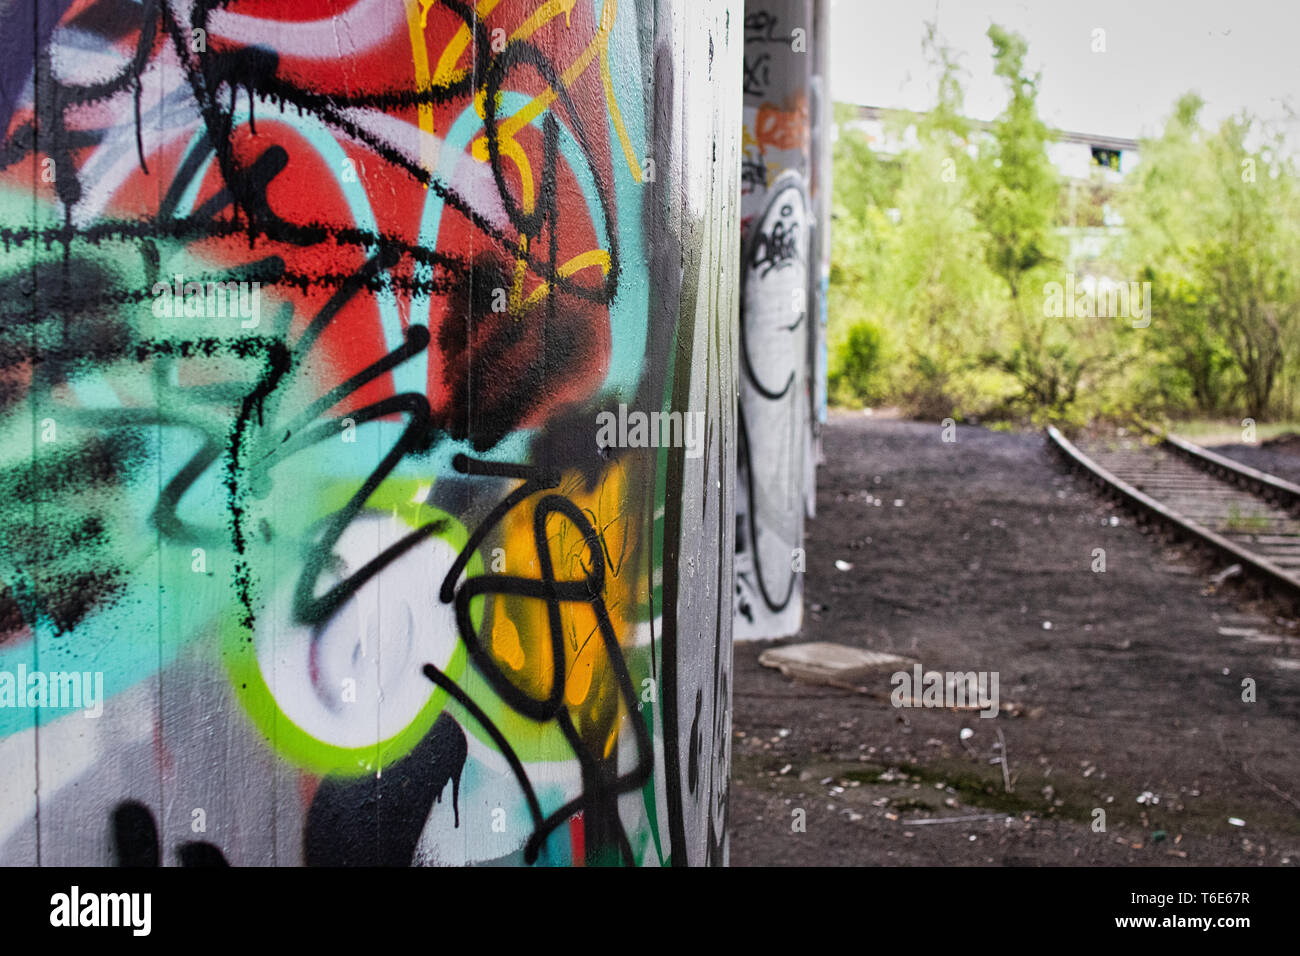 Graffiti wall at an old station in Dortmund, Germany - Stock Image